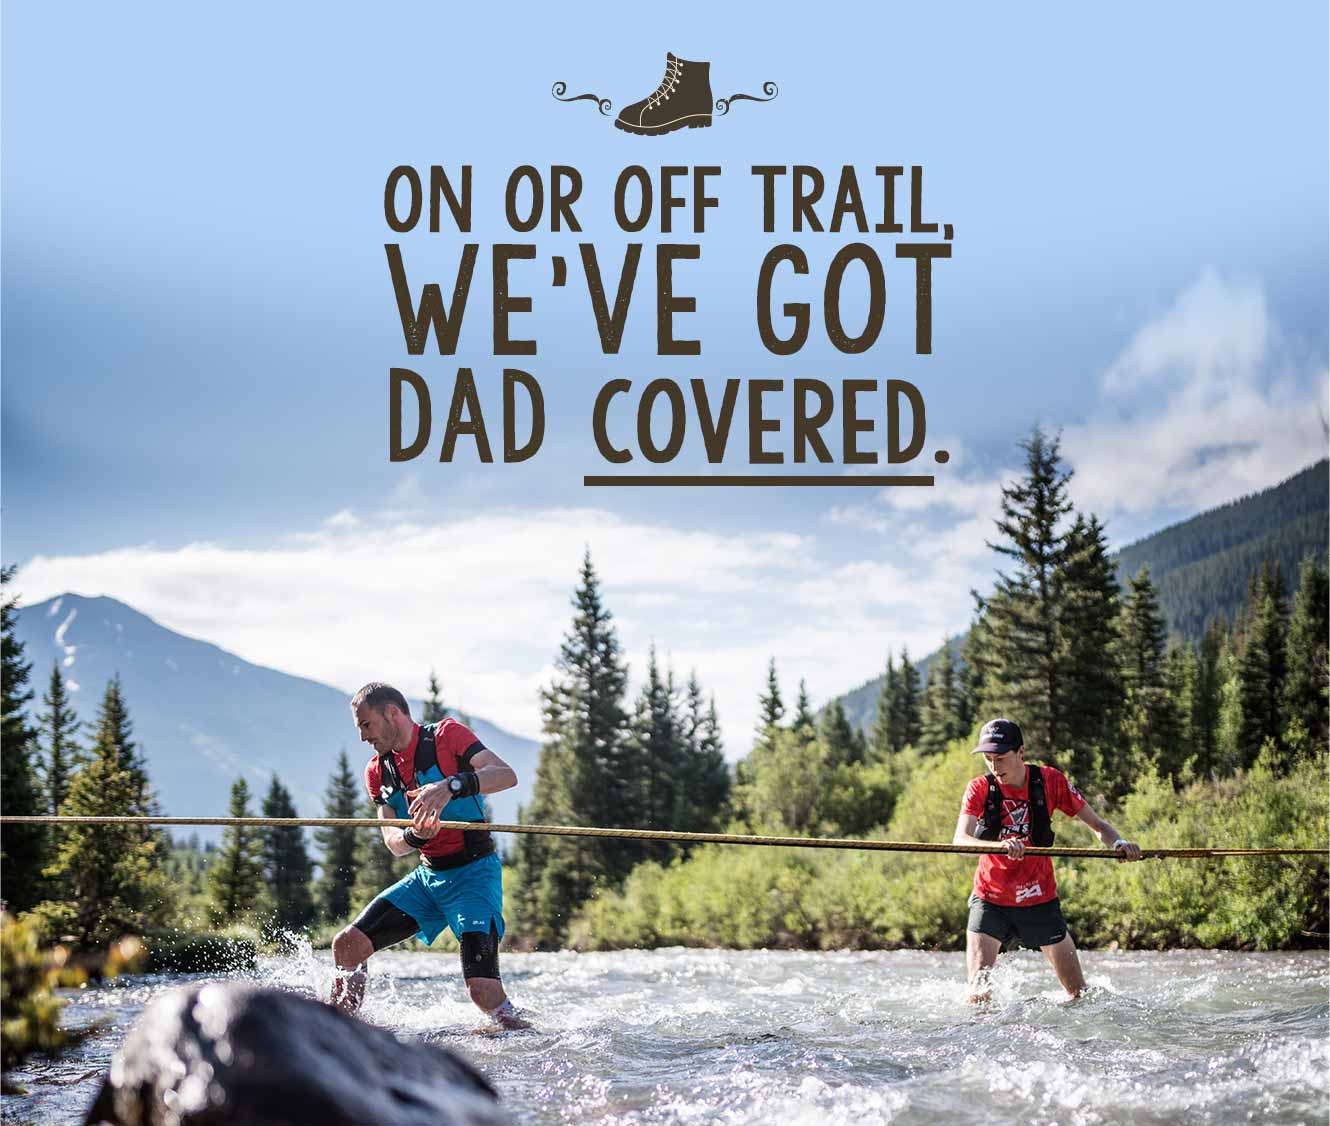 On or Off Trail, We've Got Dad Covered.